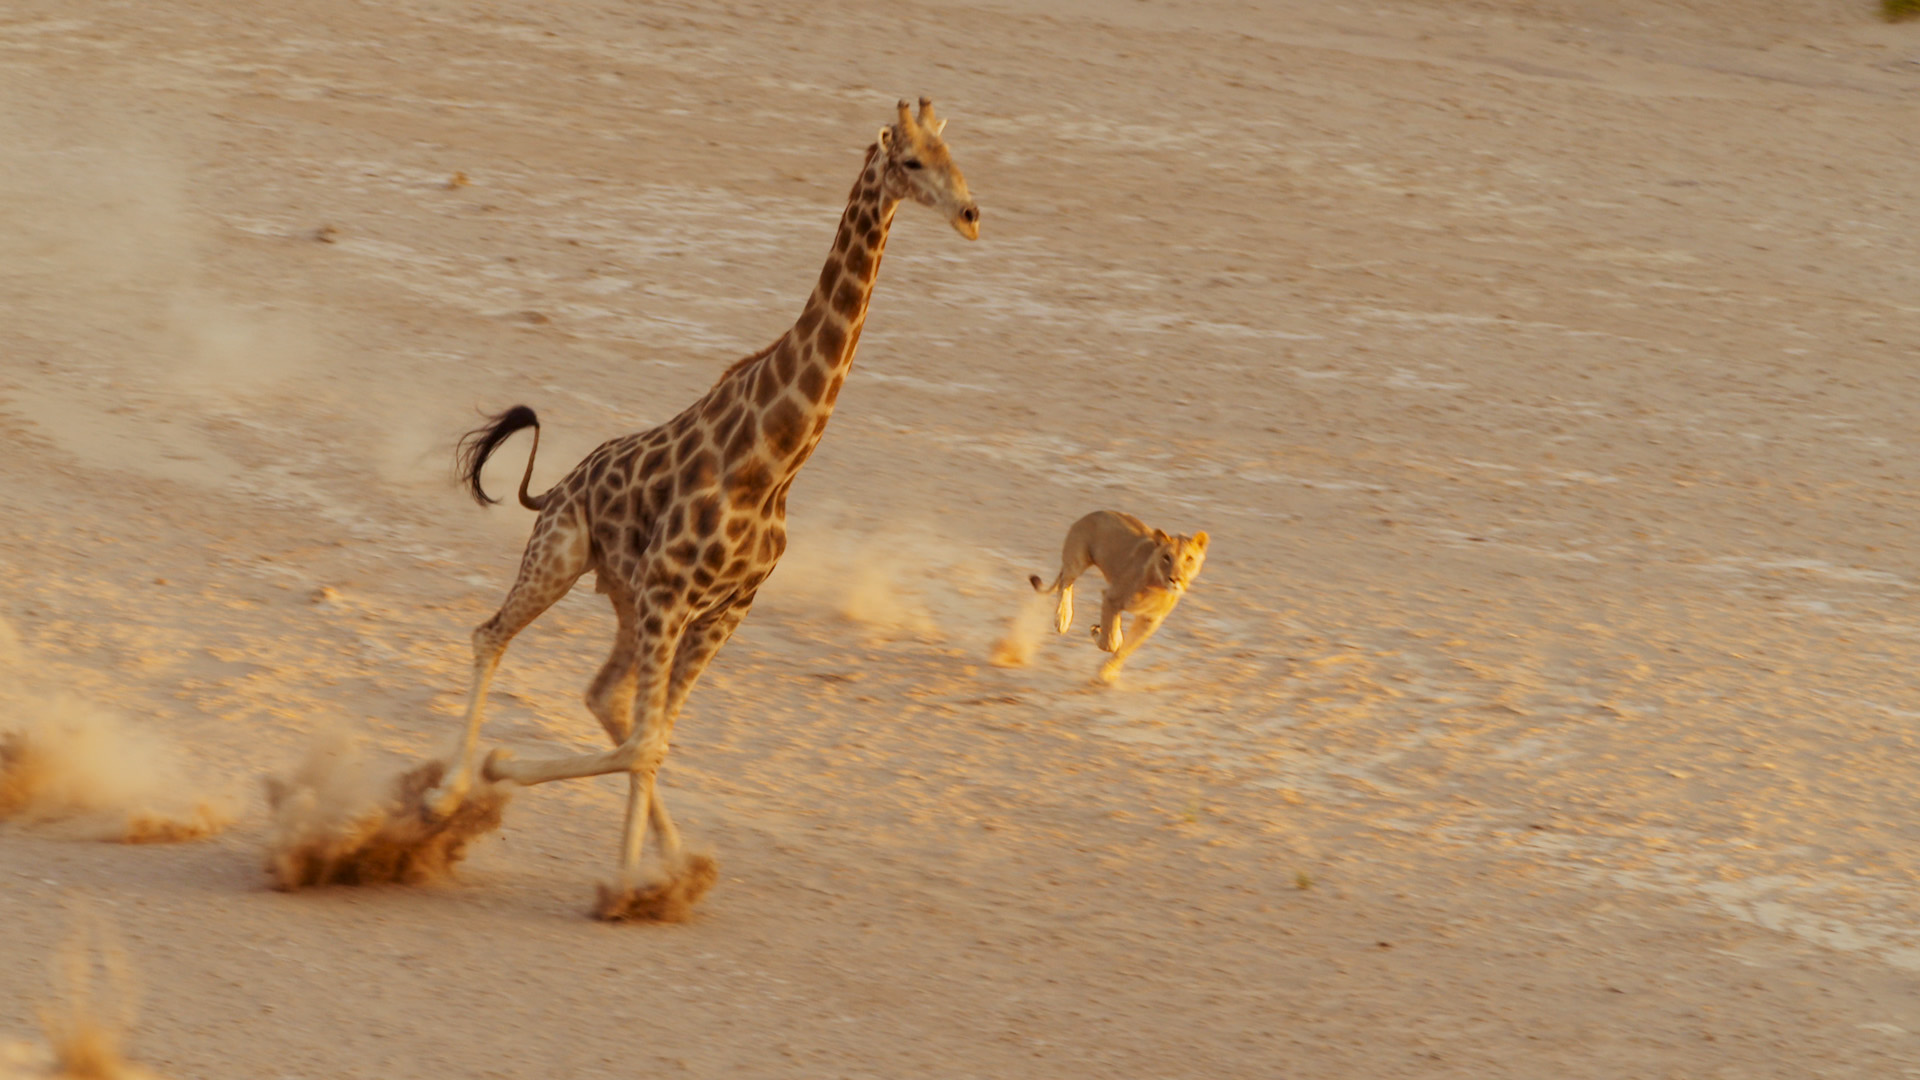 Desert lion and Giraffe | Image credit: Nature Productions)